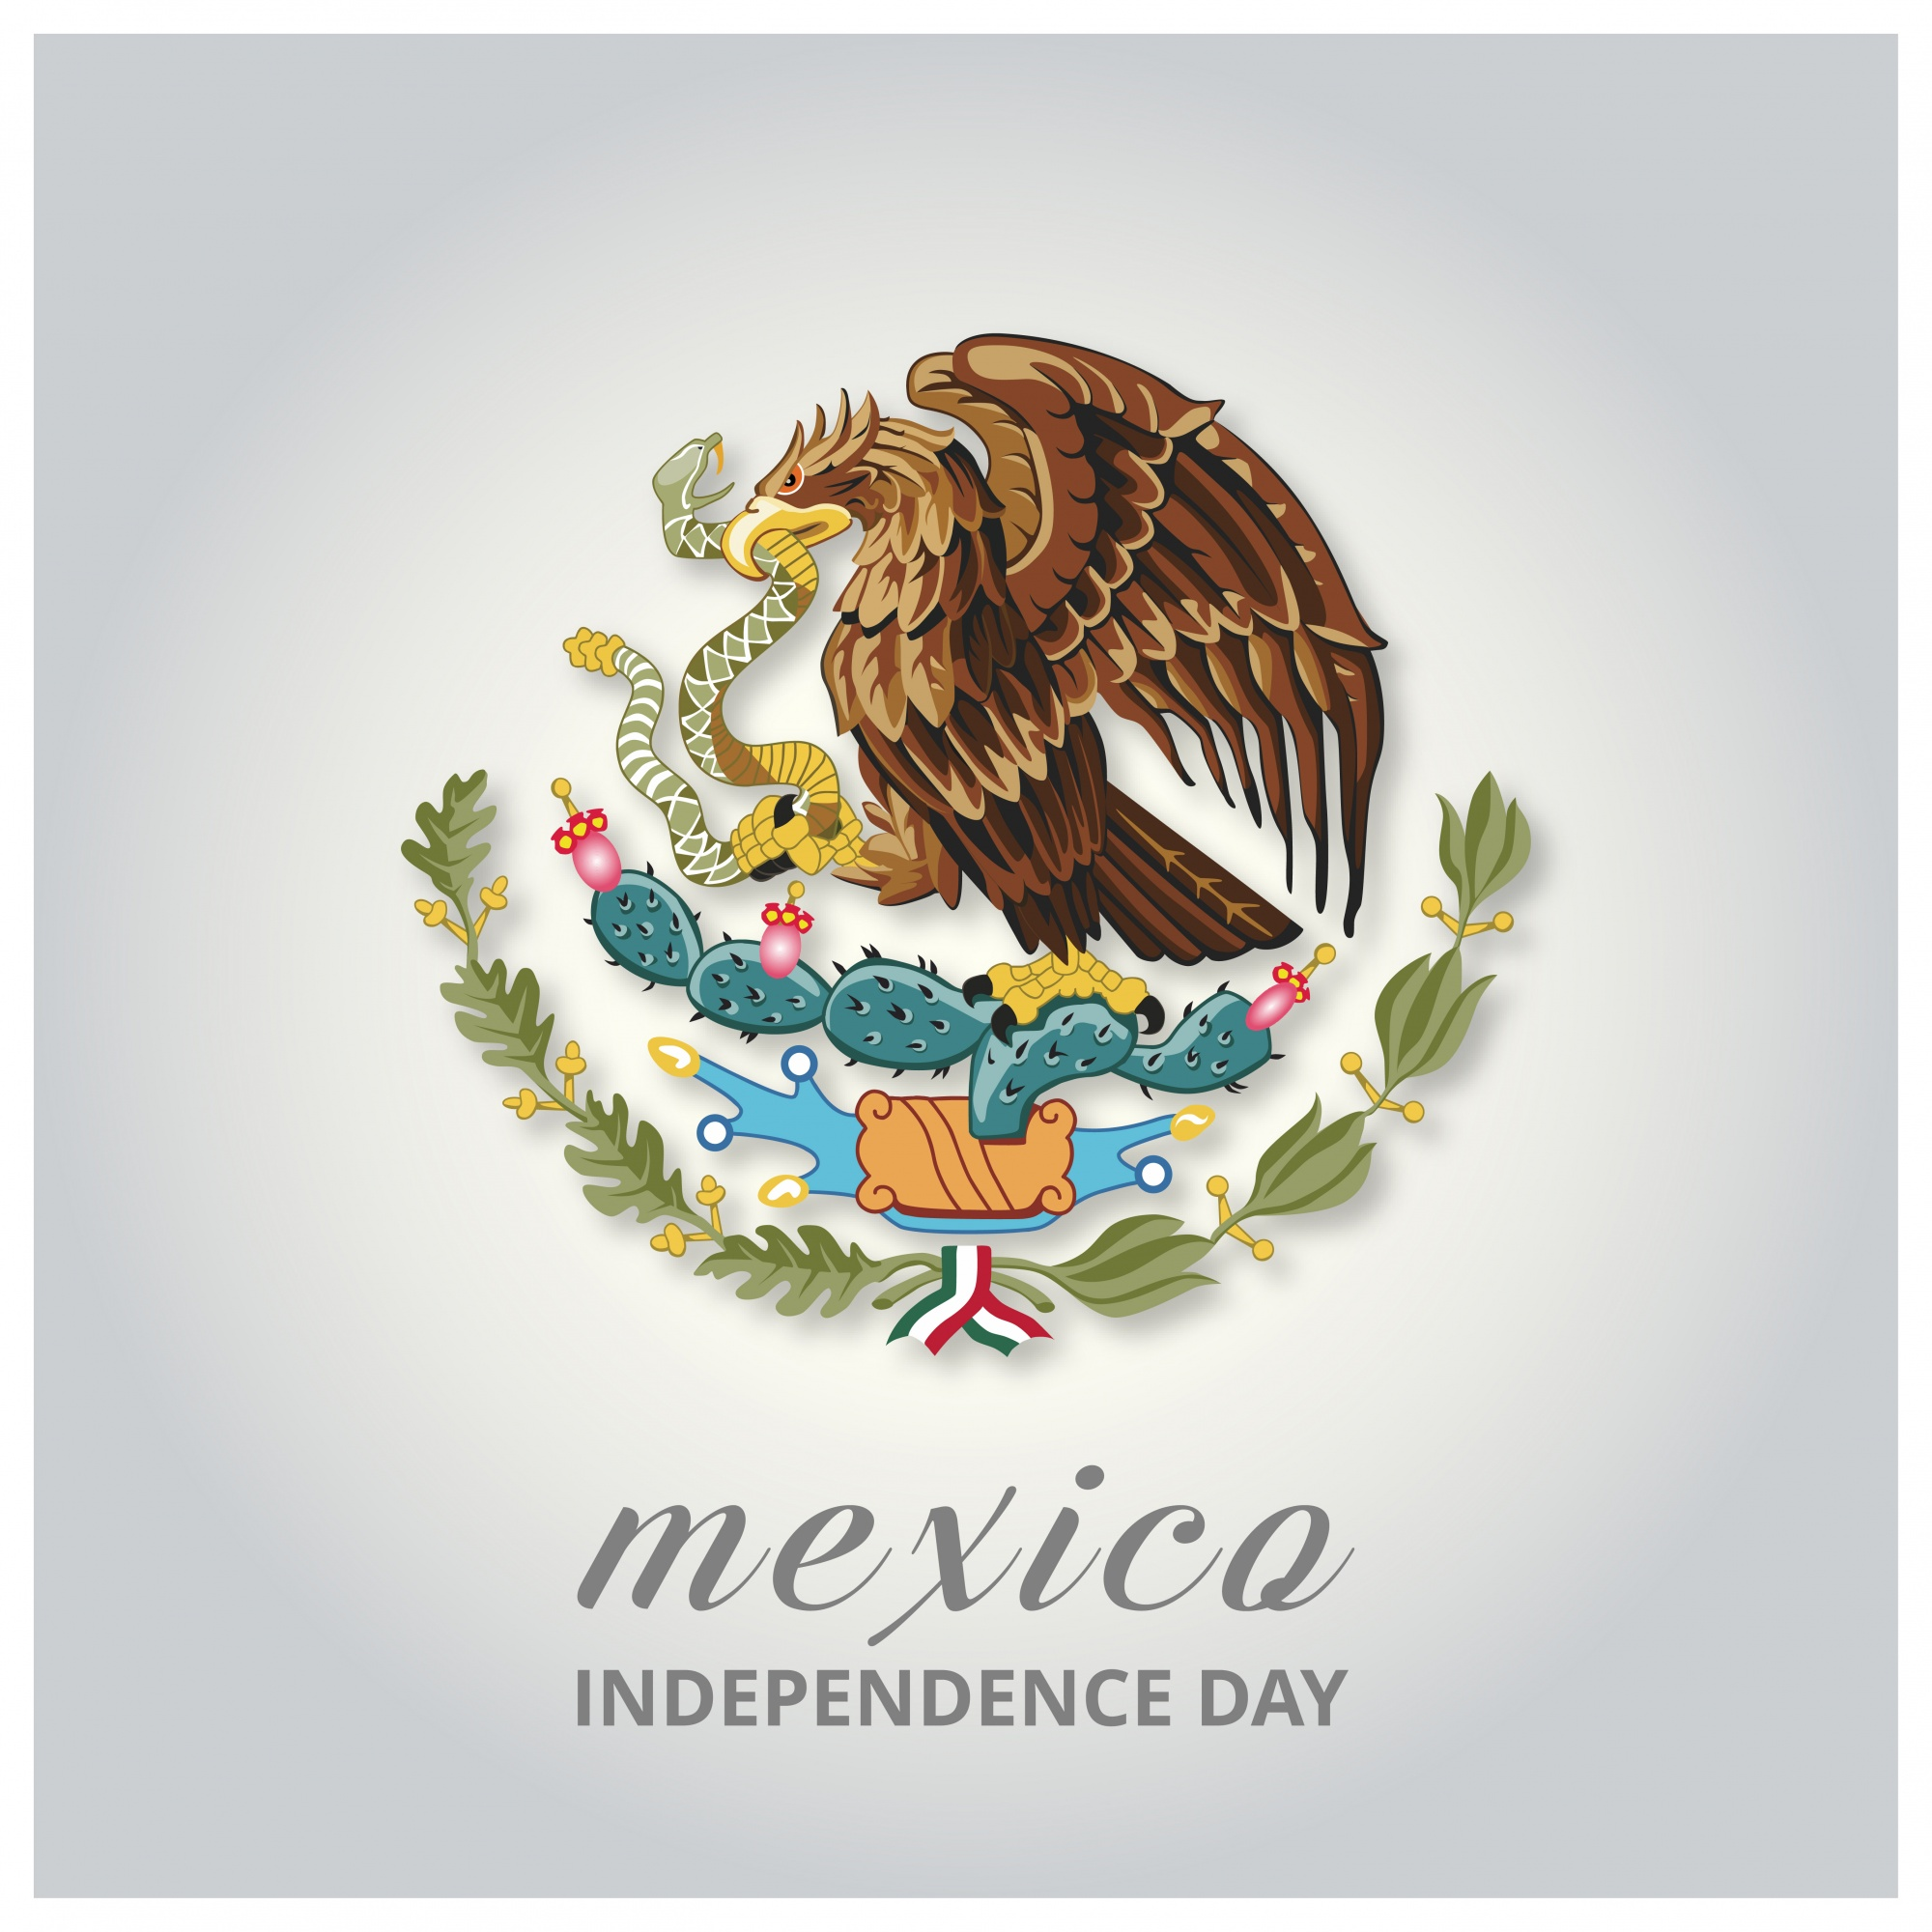 Mexico independence day design with eagle